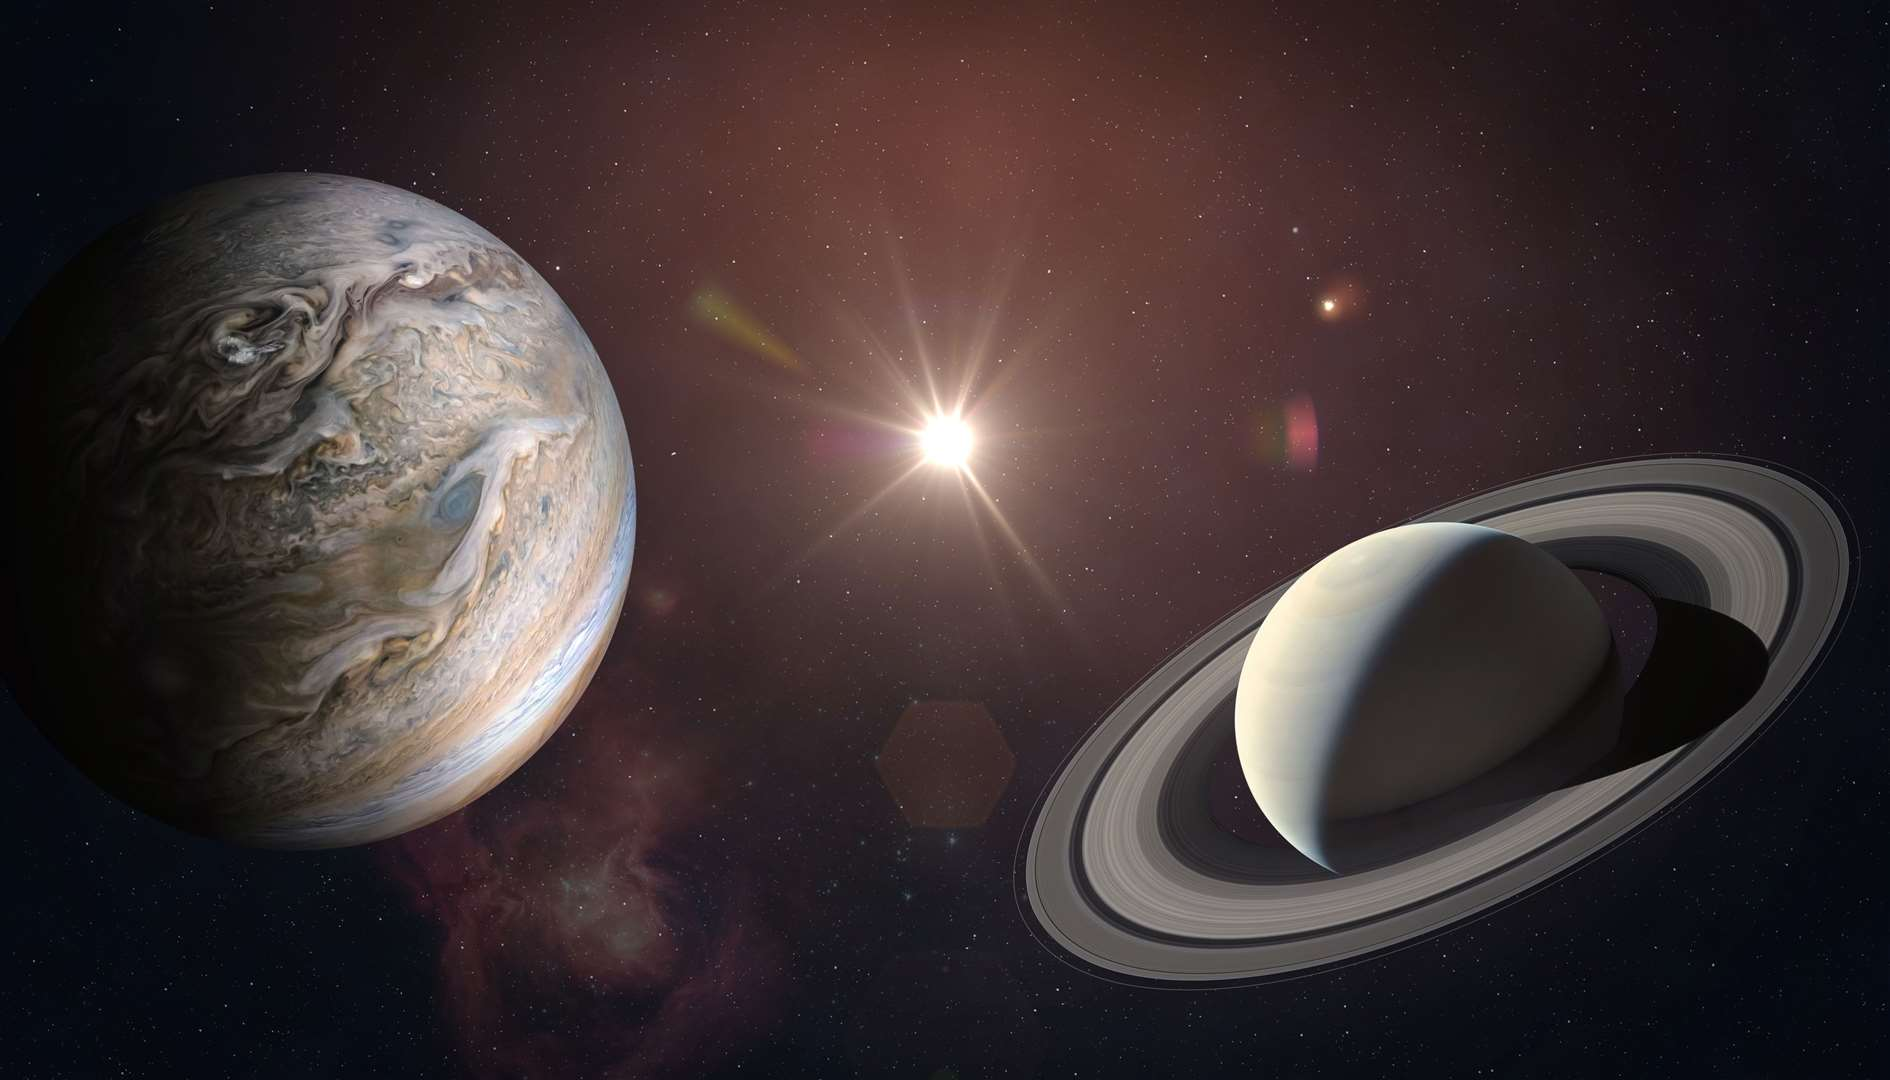 Jupiter and Saturn will appear close together as observed from Earth on December 21, 2020. Image includes elements from NASA